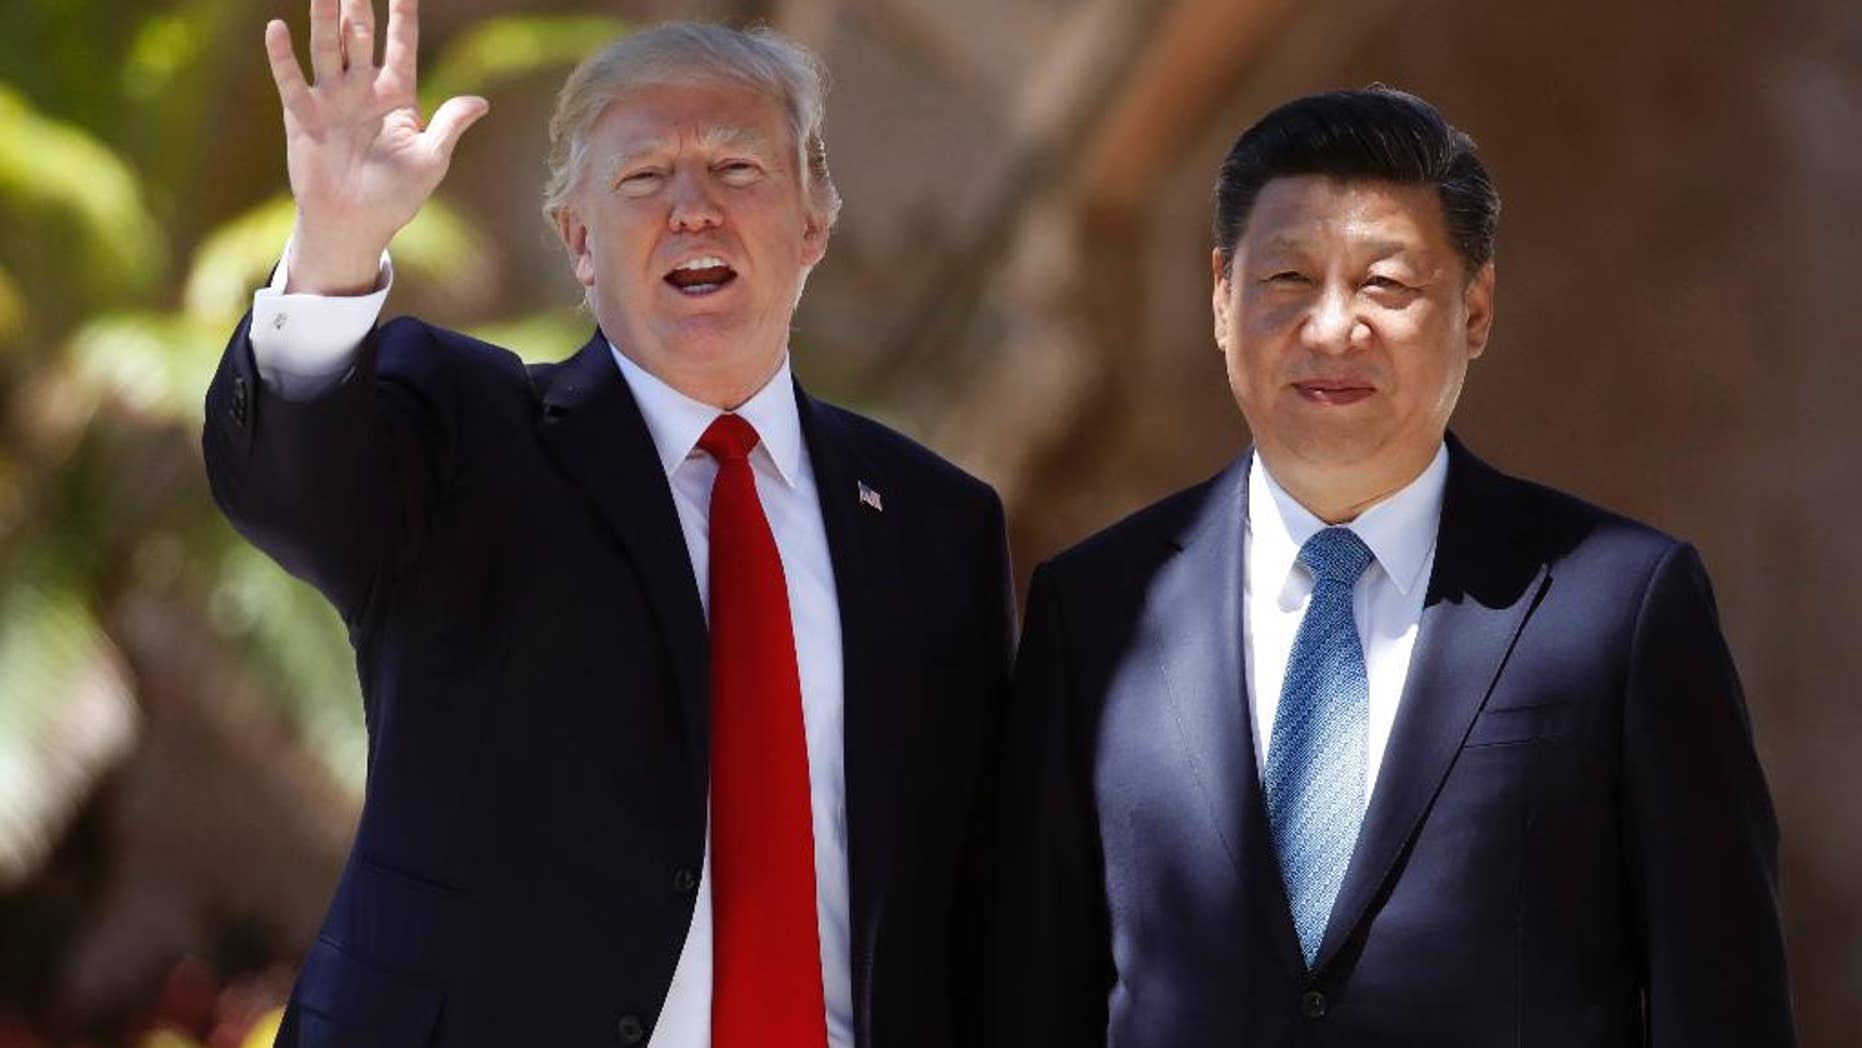 Chinese President Xi Jinping could stand to learn plenty of crucial information about President Trump, if the report of China and Russia listening to Trump's phone calls is true.